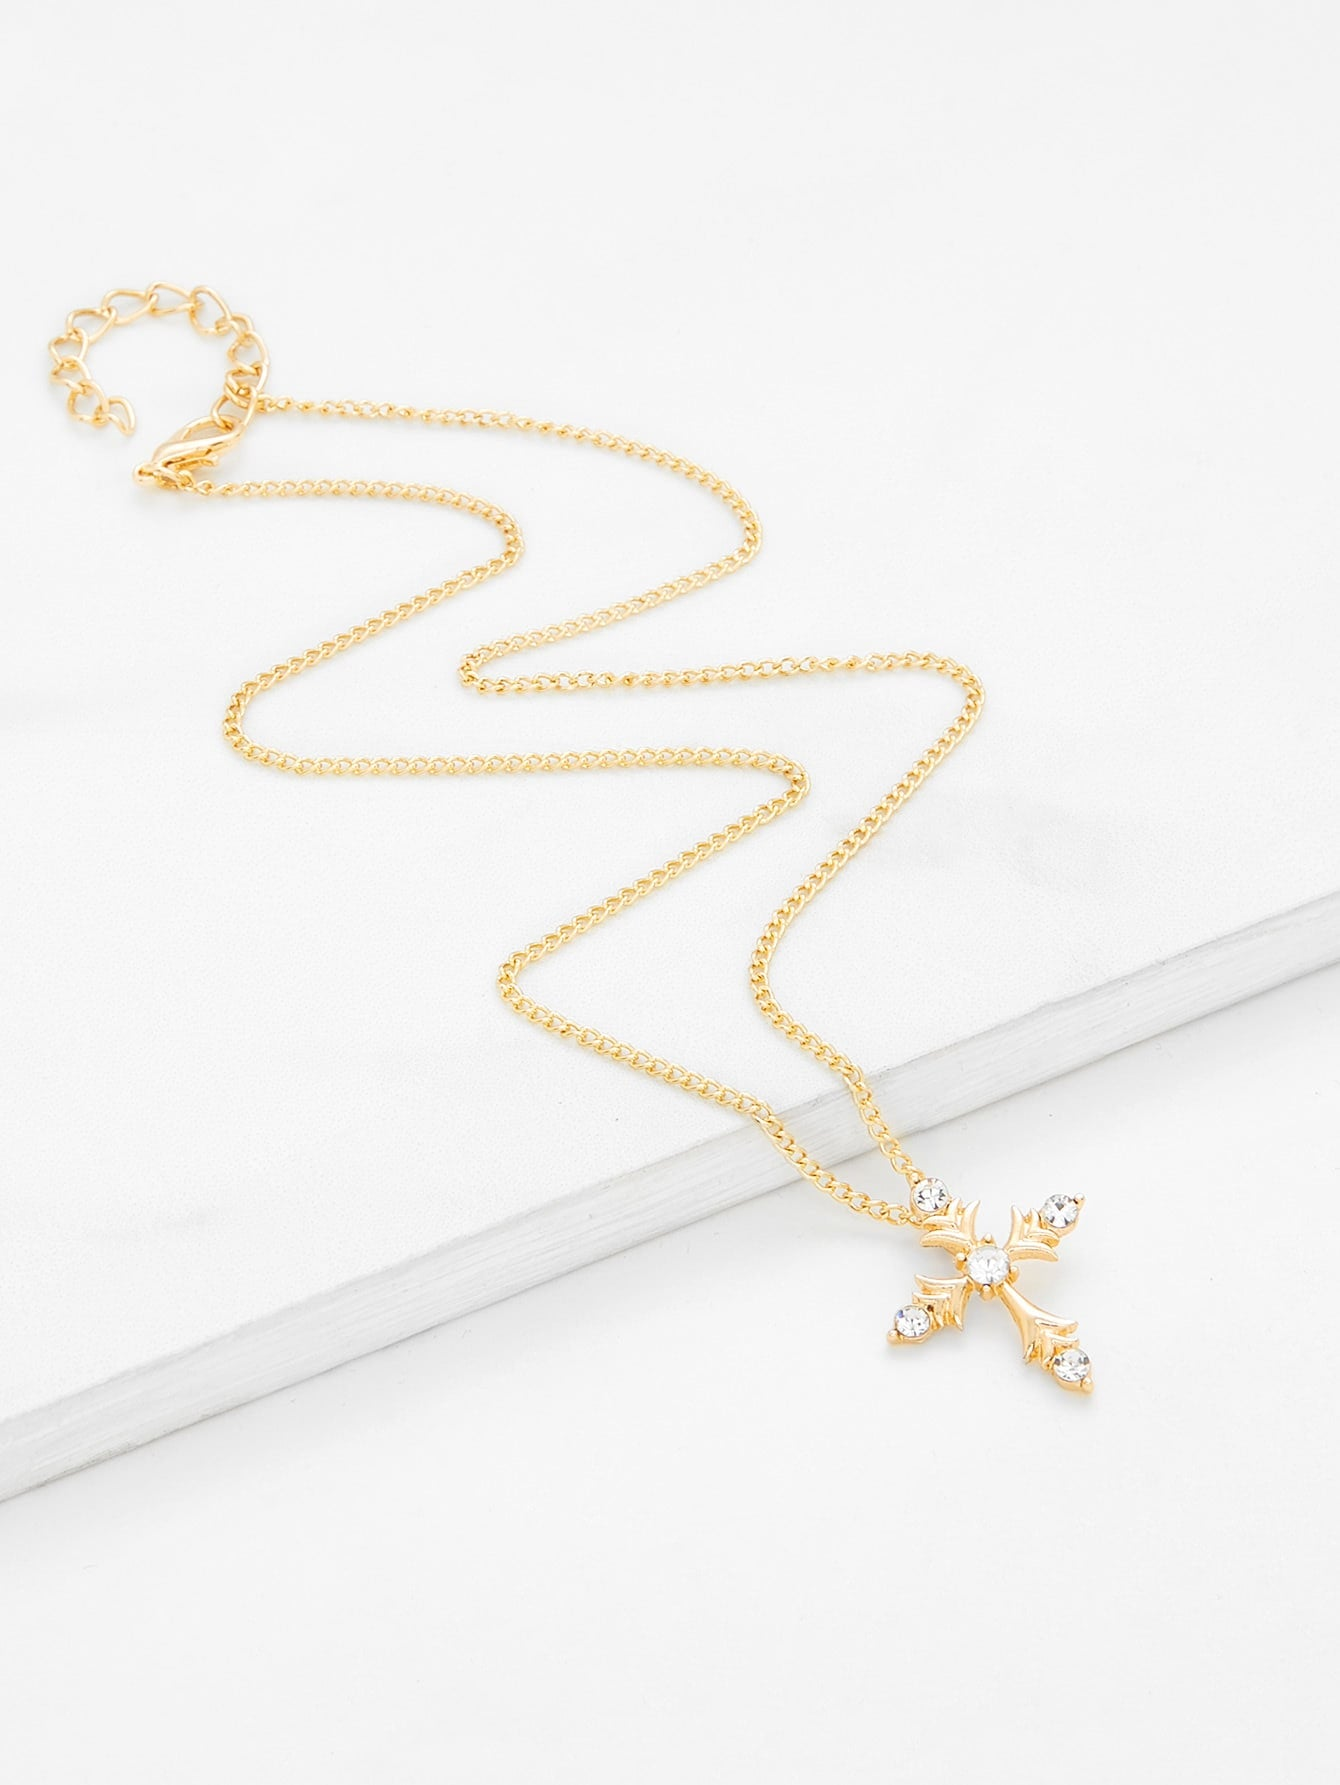 Gold Cross Pendant Chain Necklace With Gemstones - Unisex